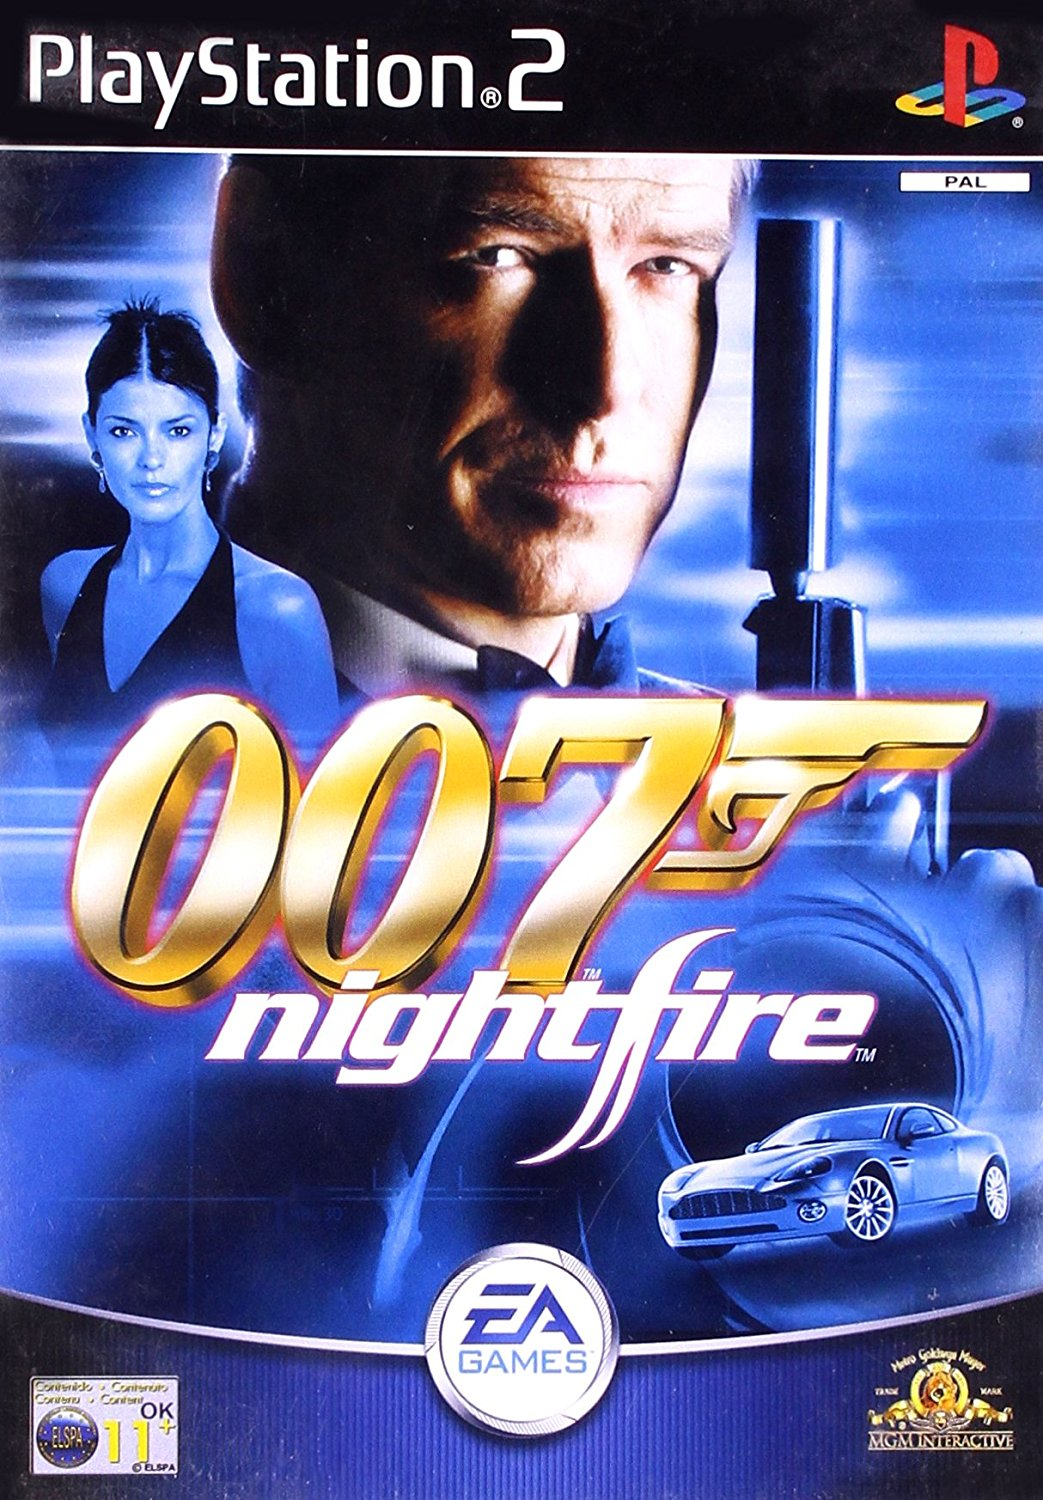 Ps2 Games All Of Them : Pierce brosnan didn t waste any time as bond the girls